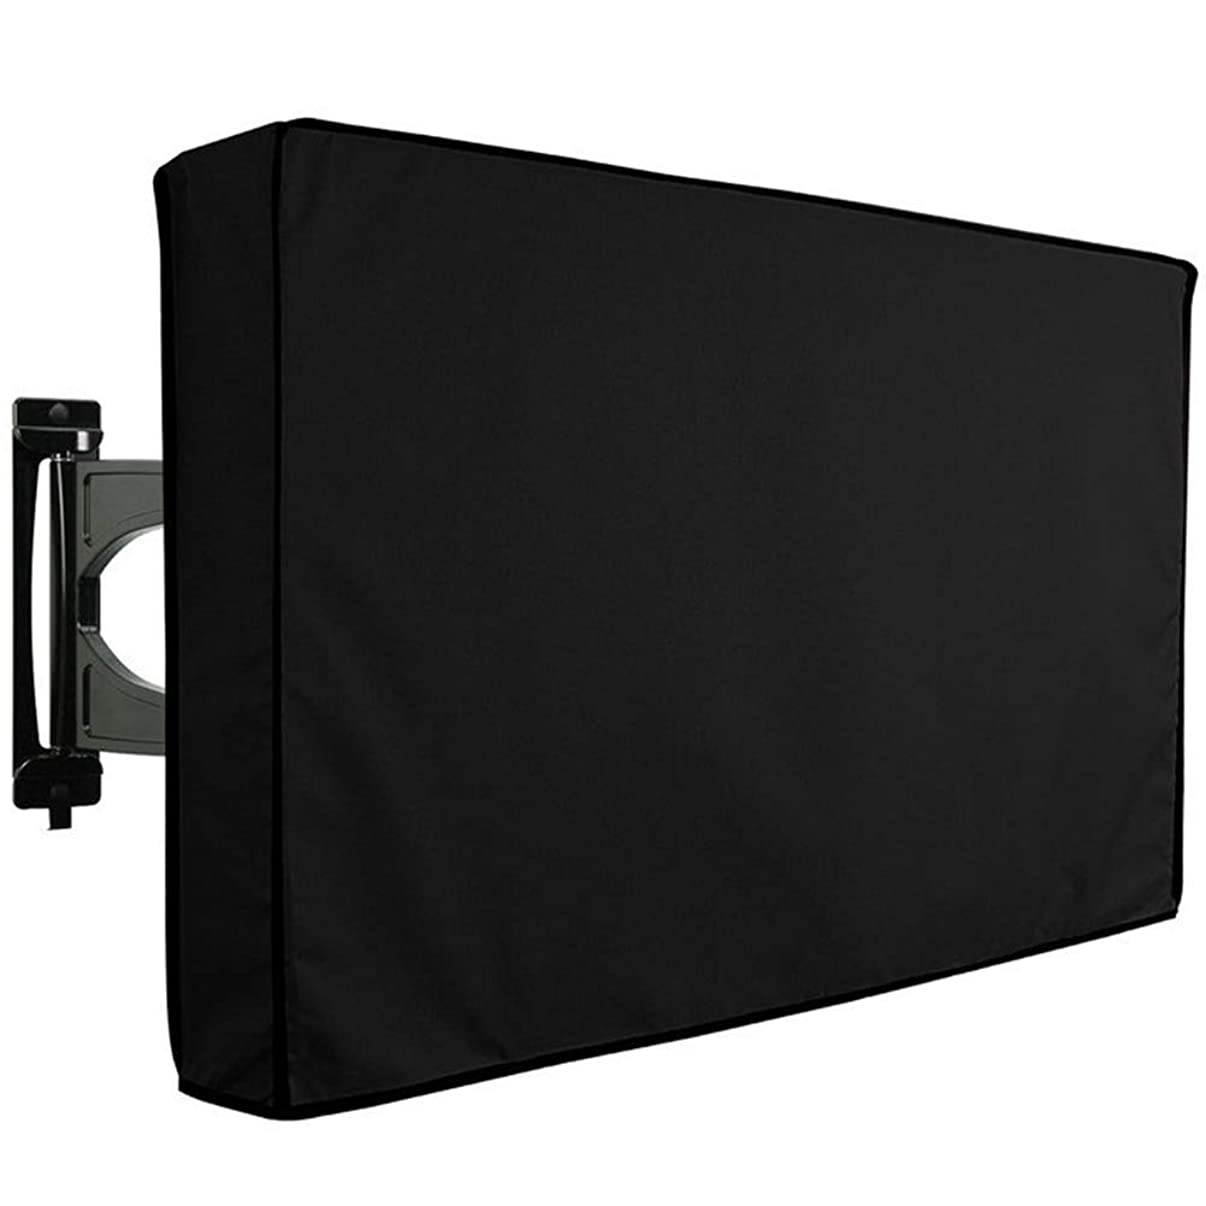 TV Cover Outdoor Garden TV Cover Dust Proof Oxford Fabric LED LCD Television Protective Case (55-58 inch TV)